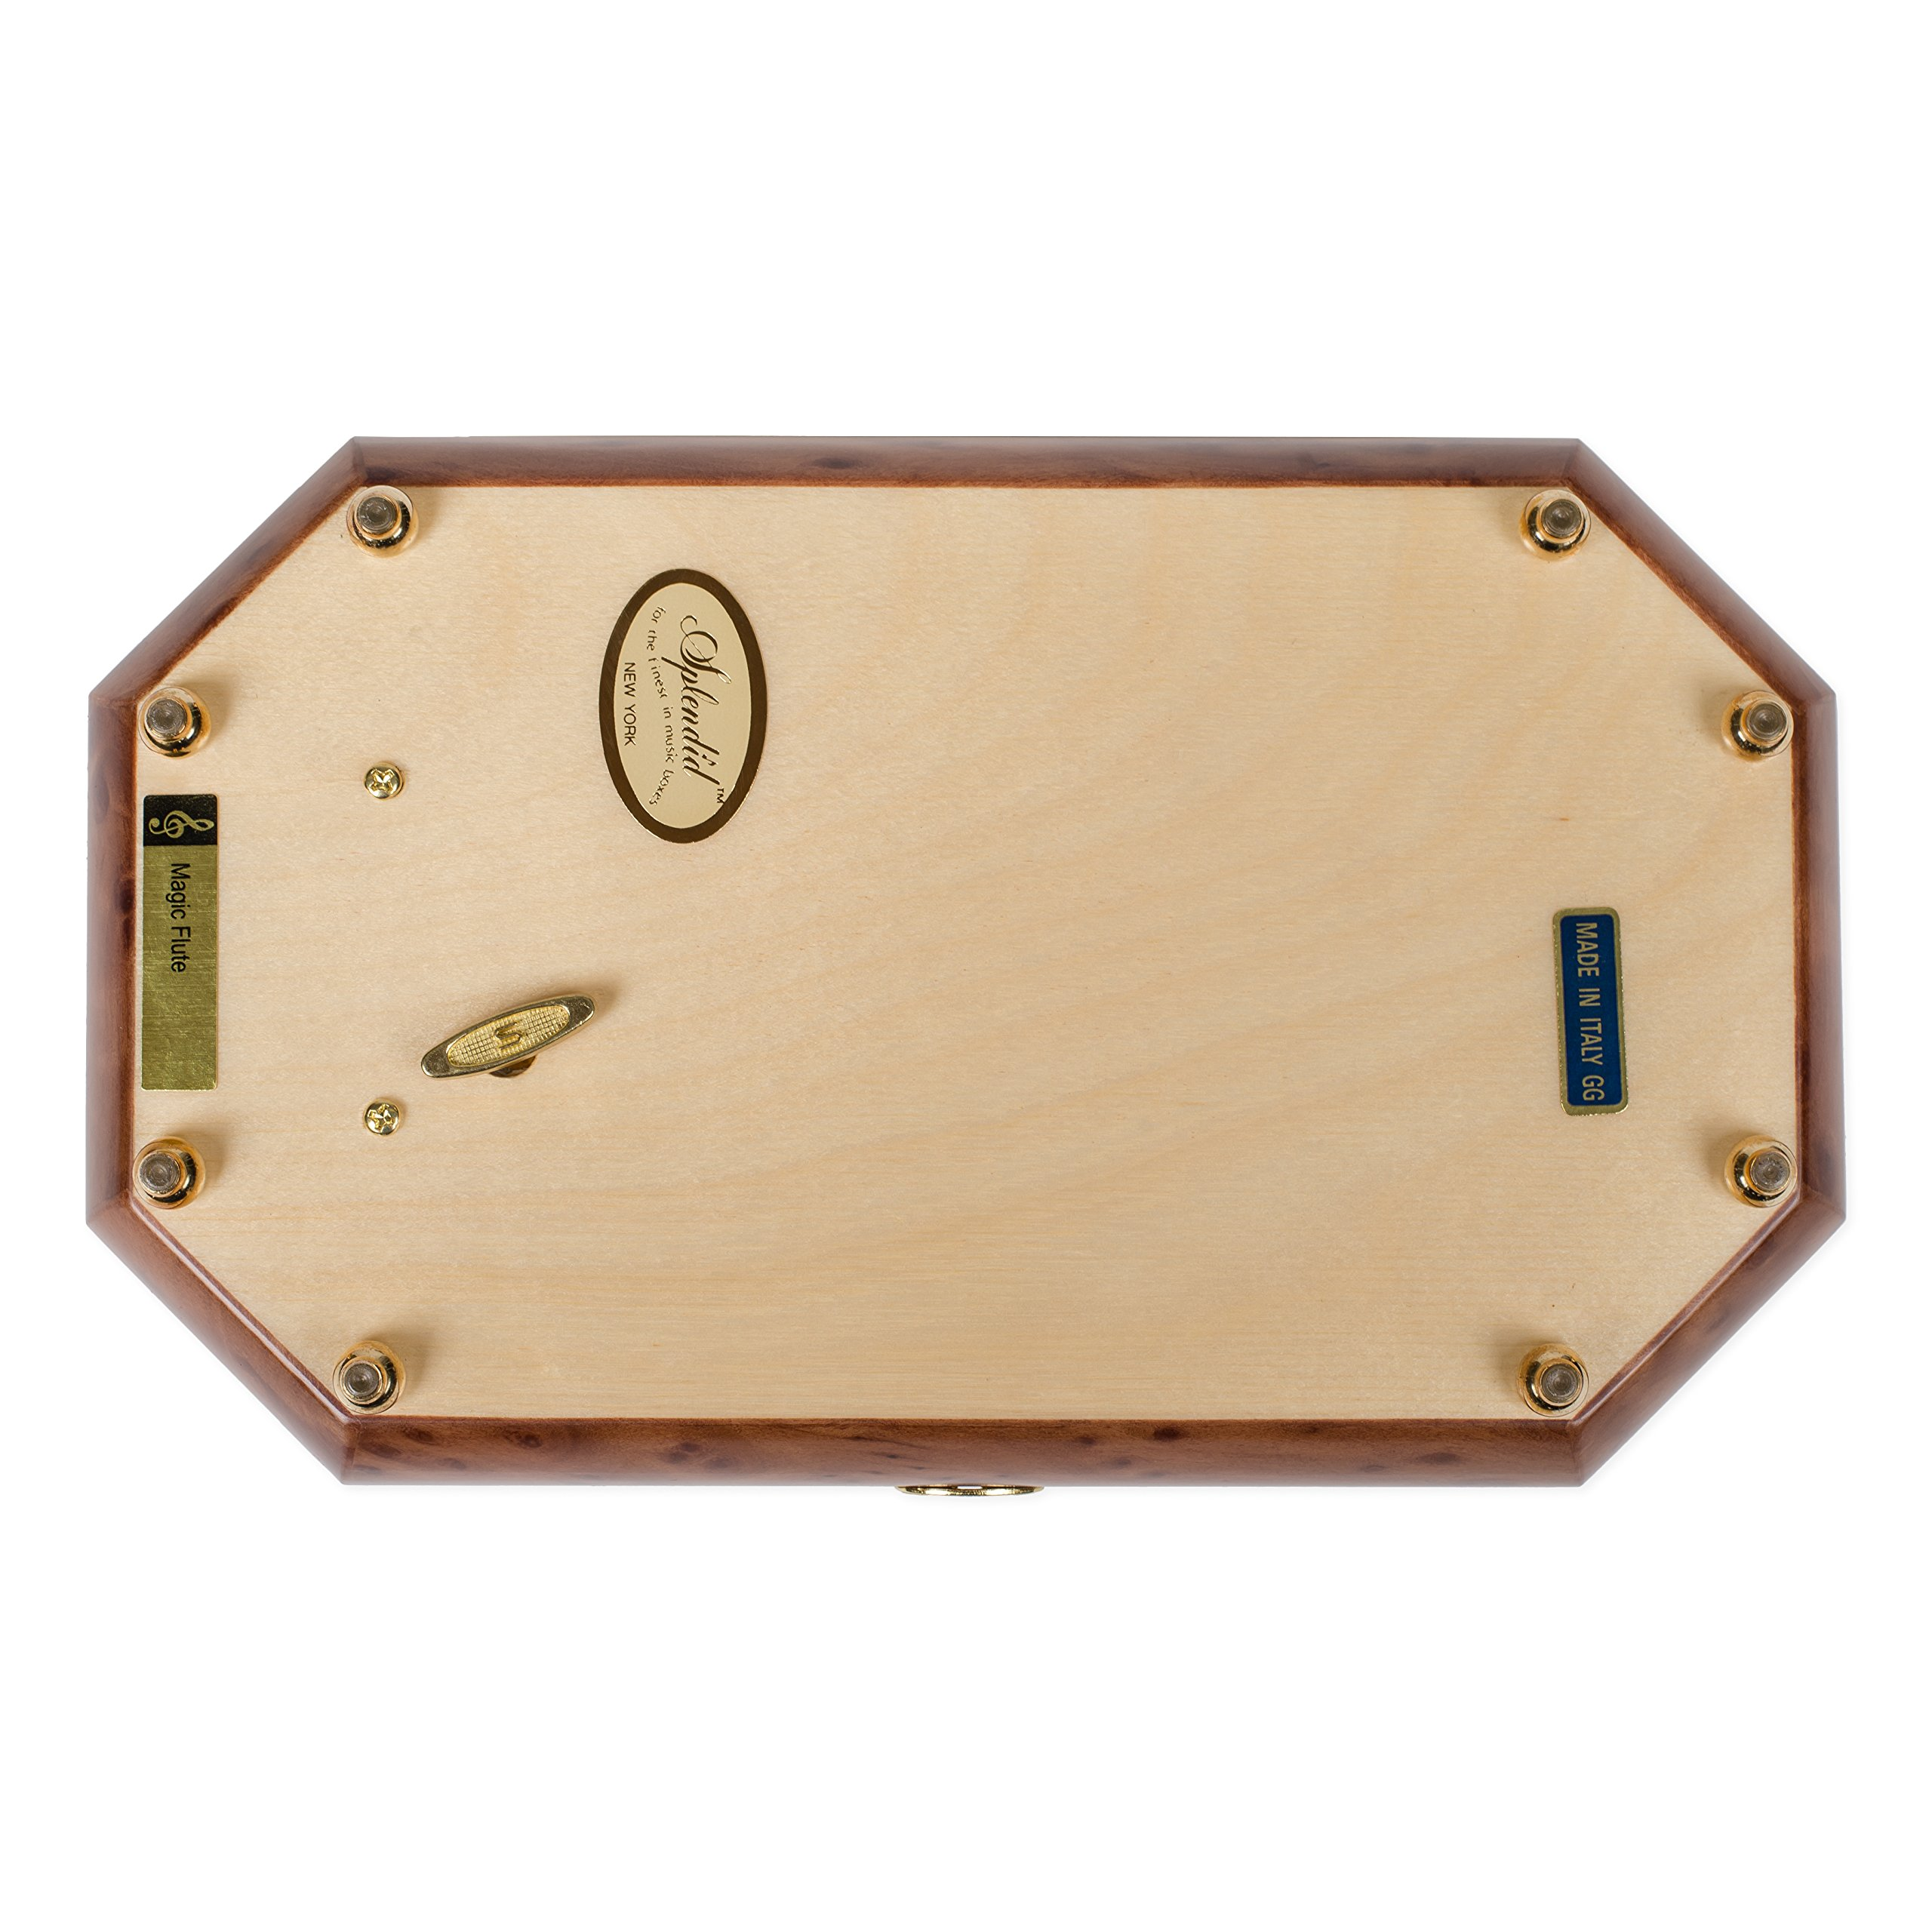 Two Wood Italian Hand Crafted Inlay Trunk Style Music Box Plays Magic Flute by Splendid Music Box Co. (Image #7)